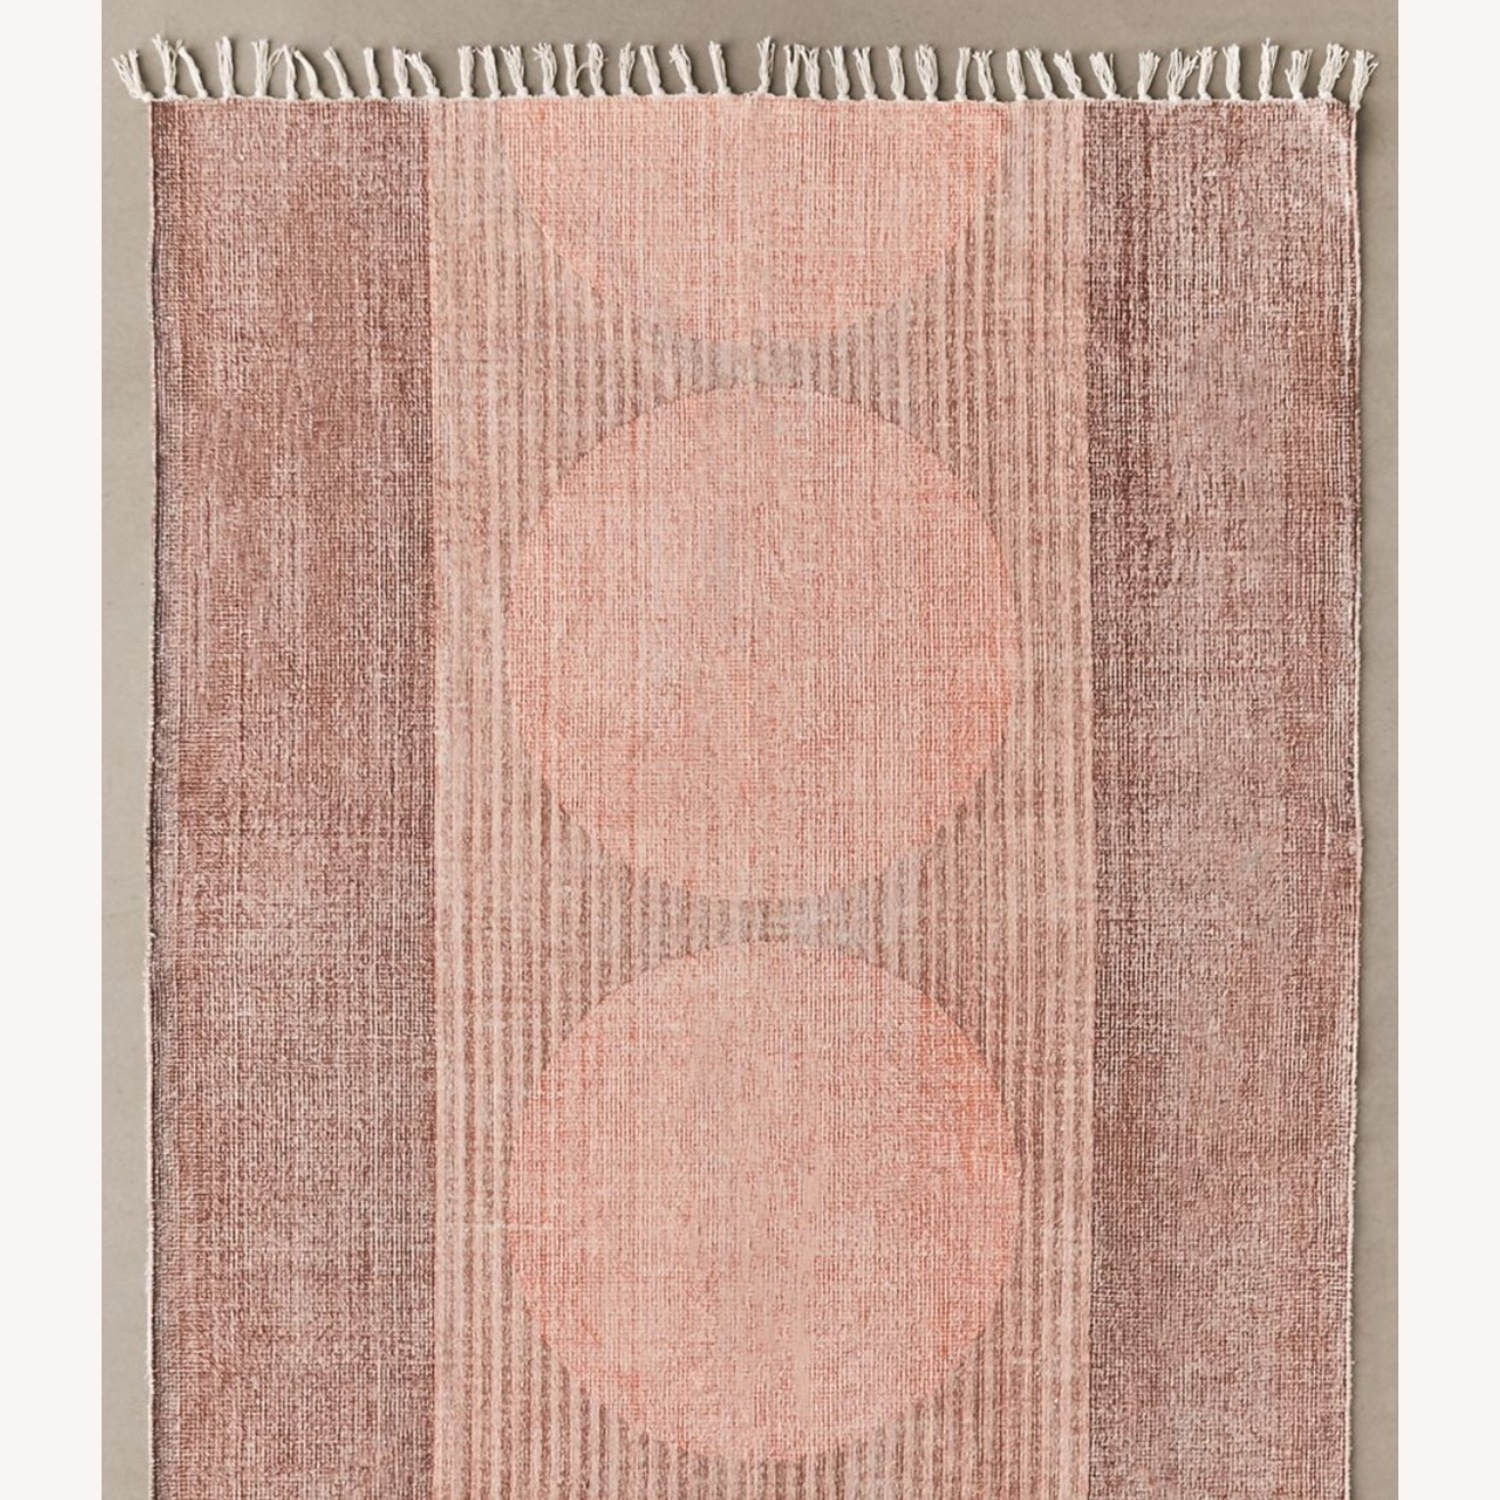 Urban Outfitters Rustic Rug - image-1